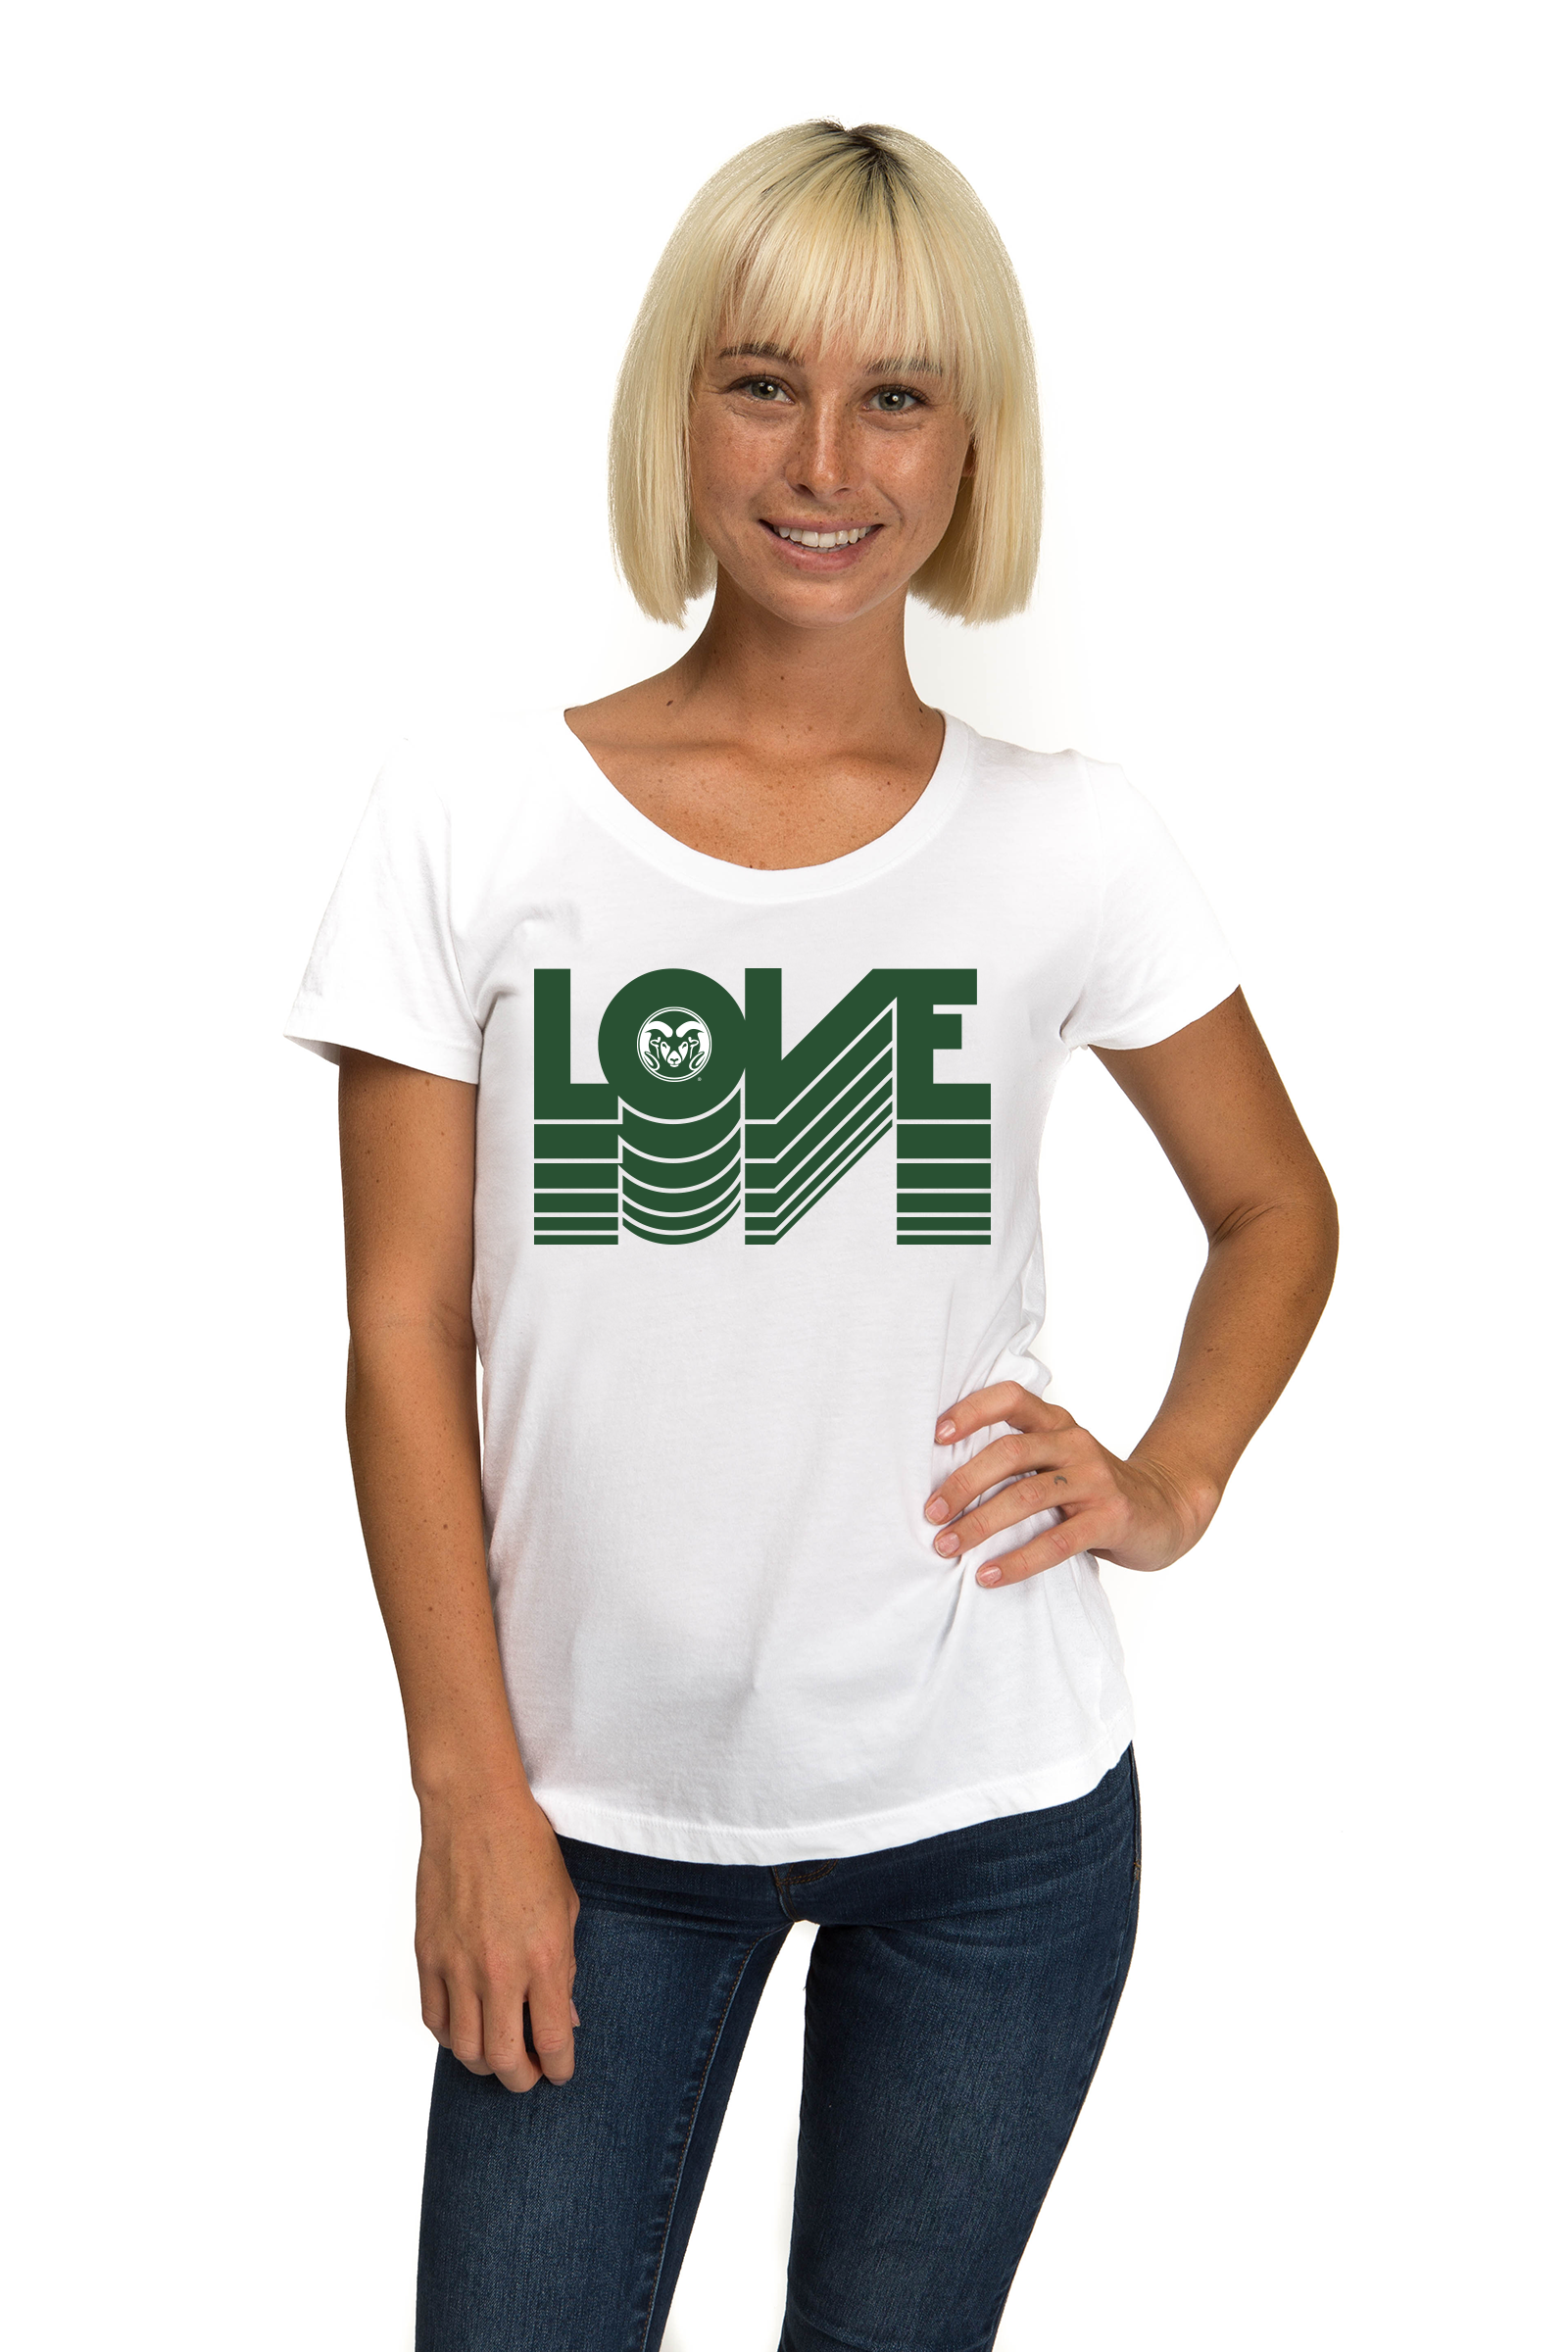 COLORADO STATE UNIVERSITY Rams Women's Organic Tee